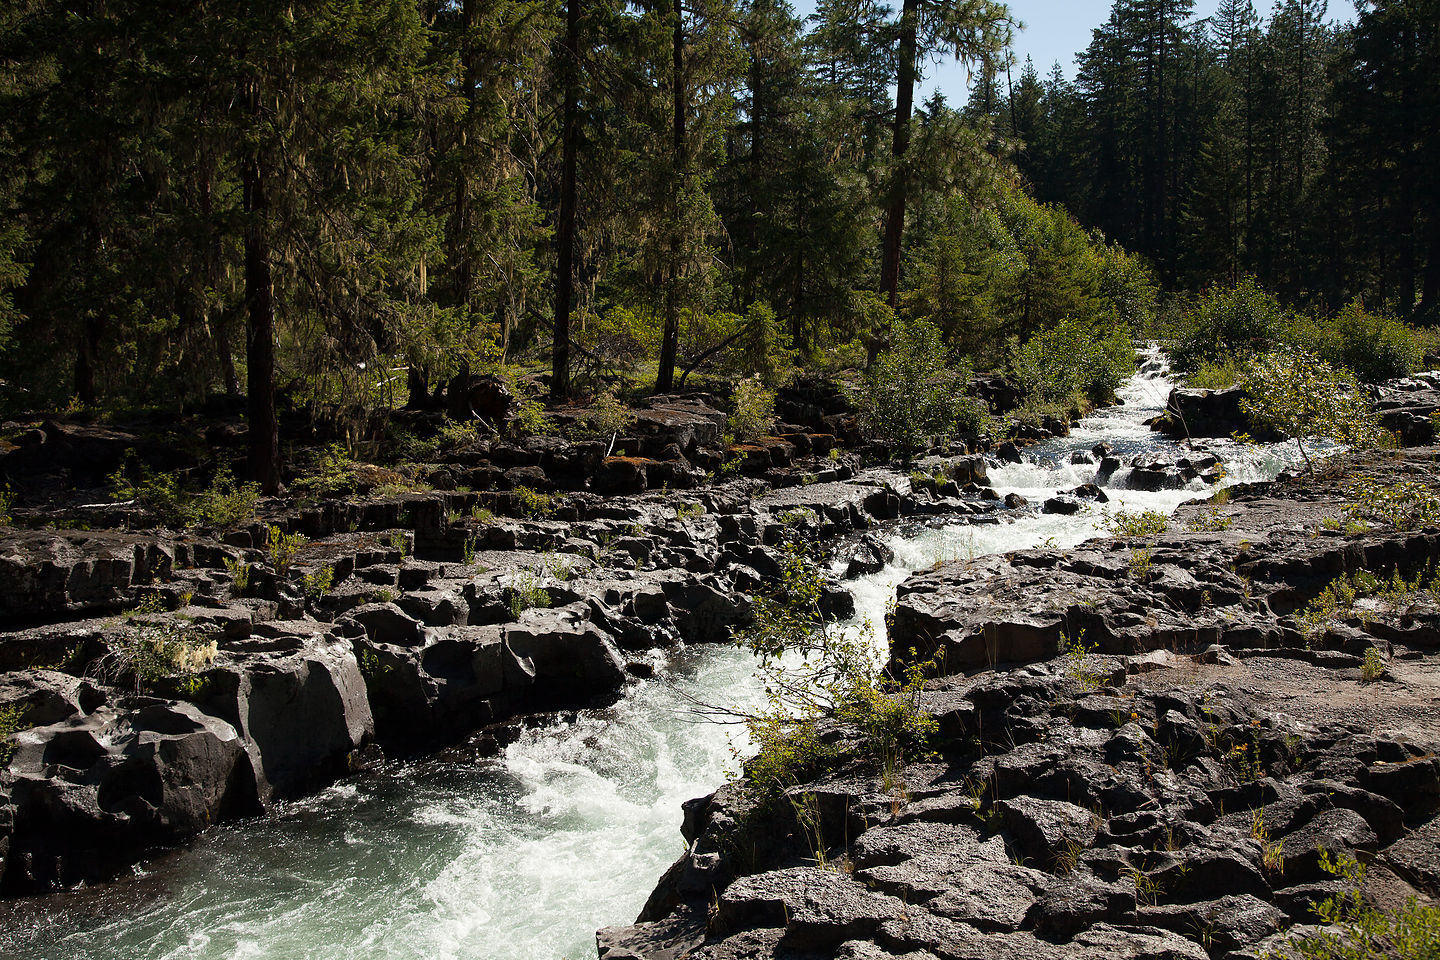 Rogue River Gorge Viewpoint